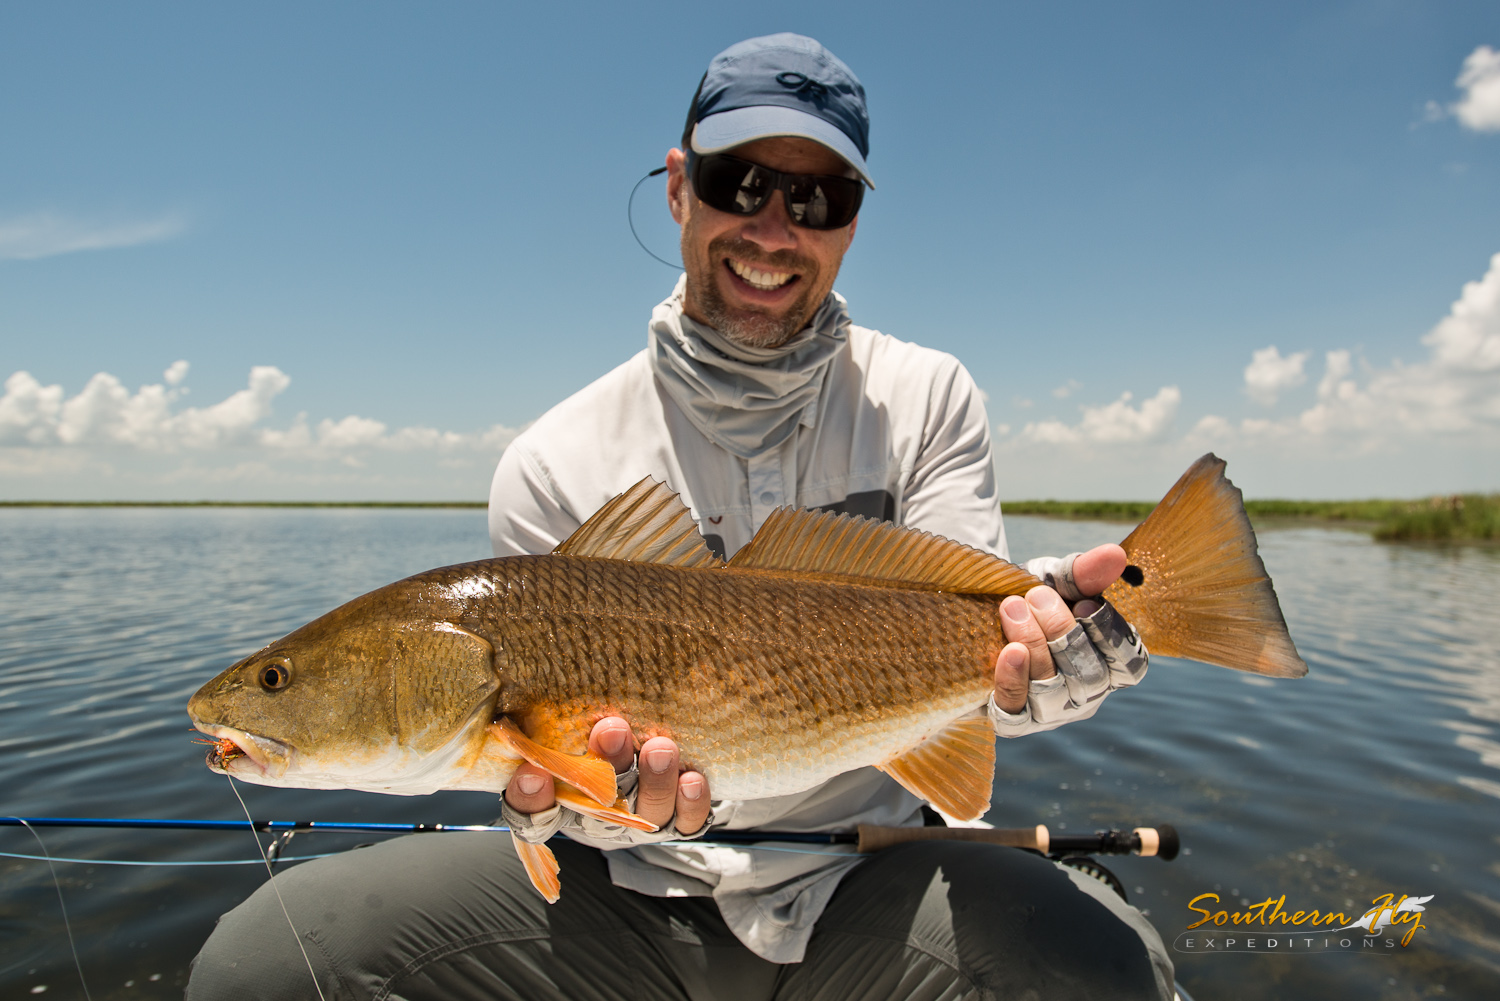 2019-06-29-07-01_SouthernFlyExpeditions_NewOrleans_DanWilcoxAndBrentByquist_Yellowdog-11.jpg